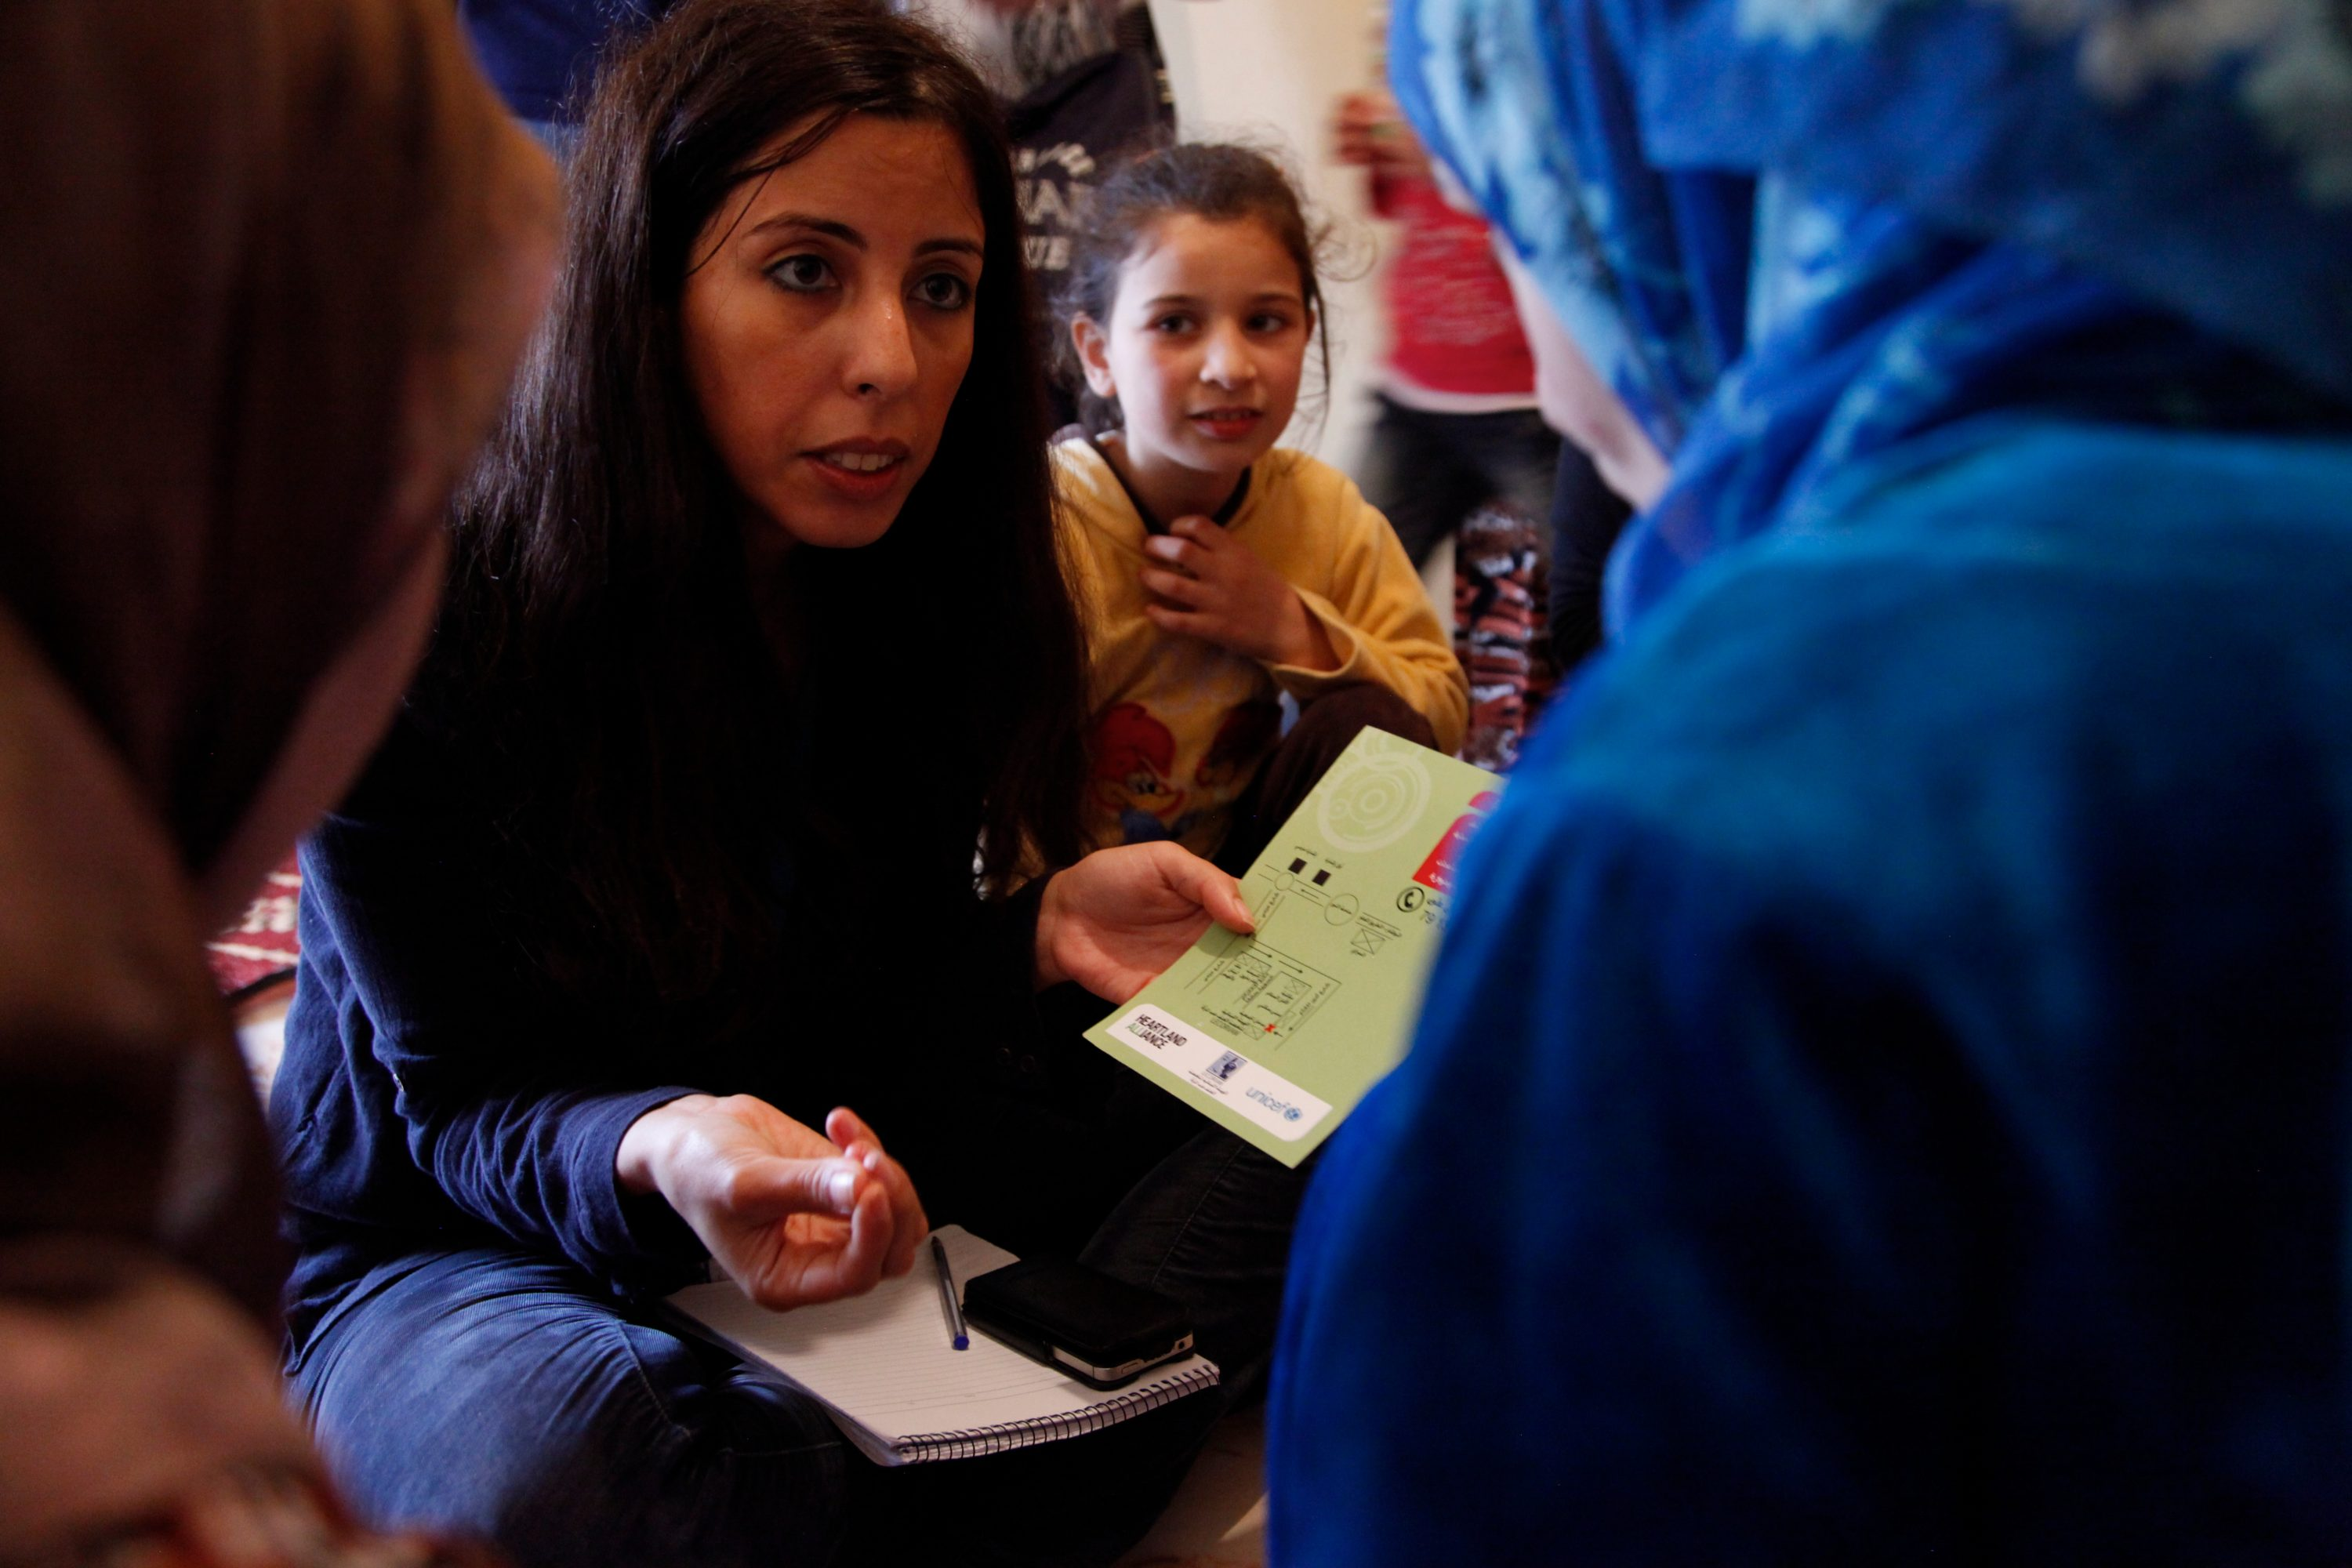 Syrian Refugee Women And Their Children Attend A Mobile Gender-based Violence Outreach Session In An Unfinished Apartment Block In Nothern Lebanon. The Apartment Complex Is Being Rented By Syrian Refugee Families, Many Of Whom Are Living Two Or Three Families In Each Apartment. The Outreach Sessions Are Run The By NGO Heartland Alliance And Local NGO Lecorvaw, With Support From UNICEF And UK Aid.